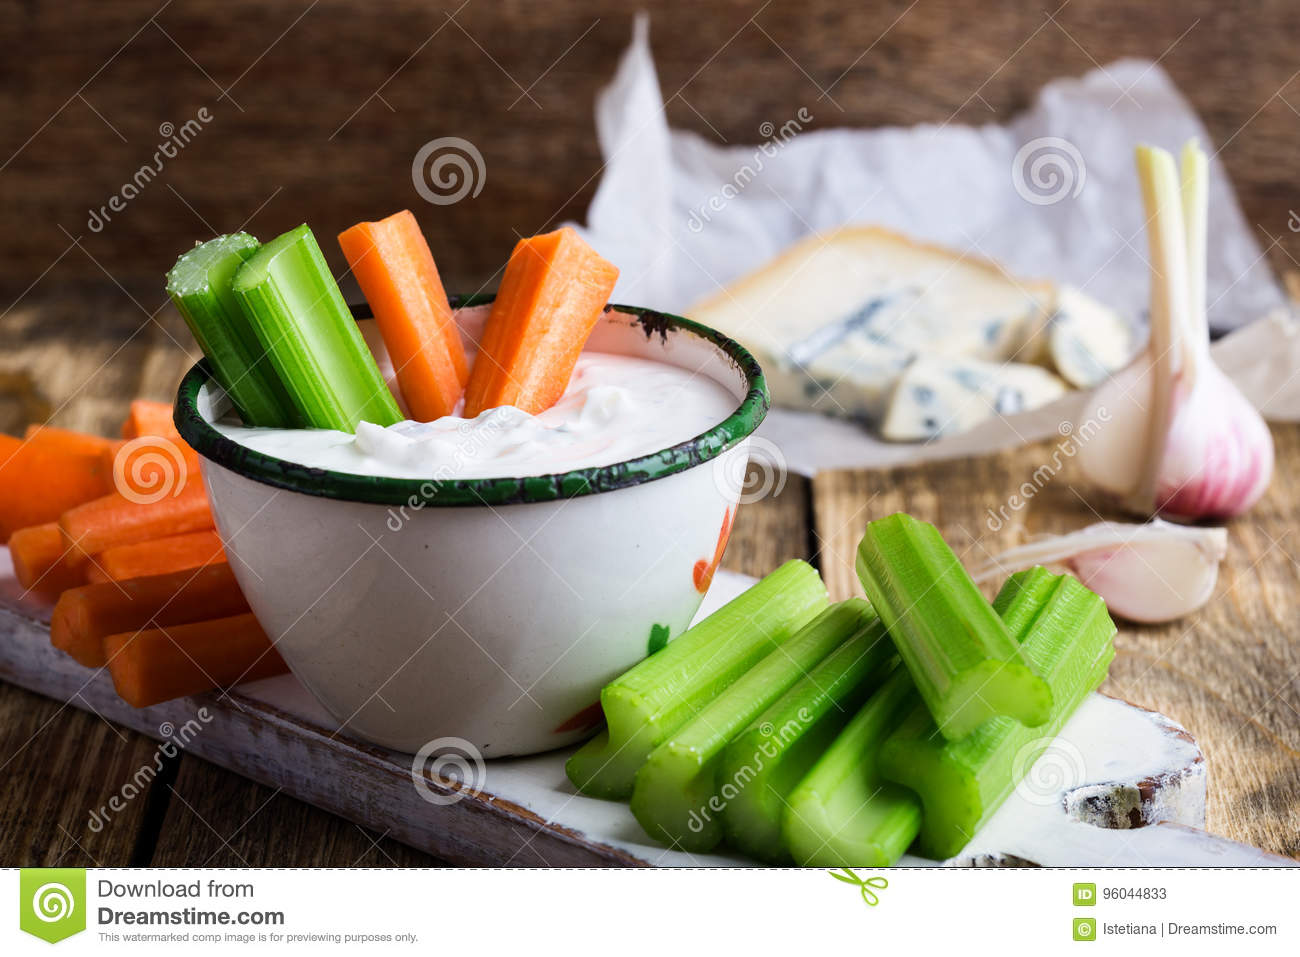 Mug Of Blue Cheese Garlic Dip Sauce With Celery And Carrot Stick Stock Image Image Of Blue Appetizer 96044833